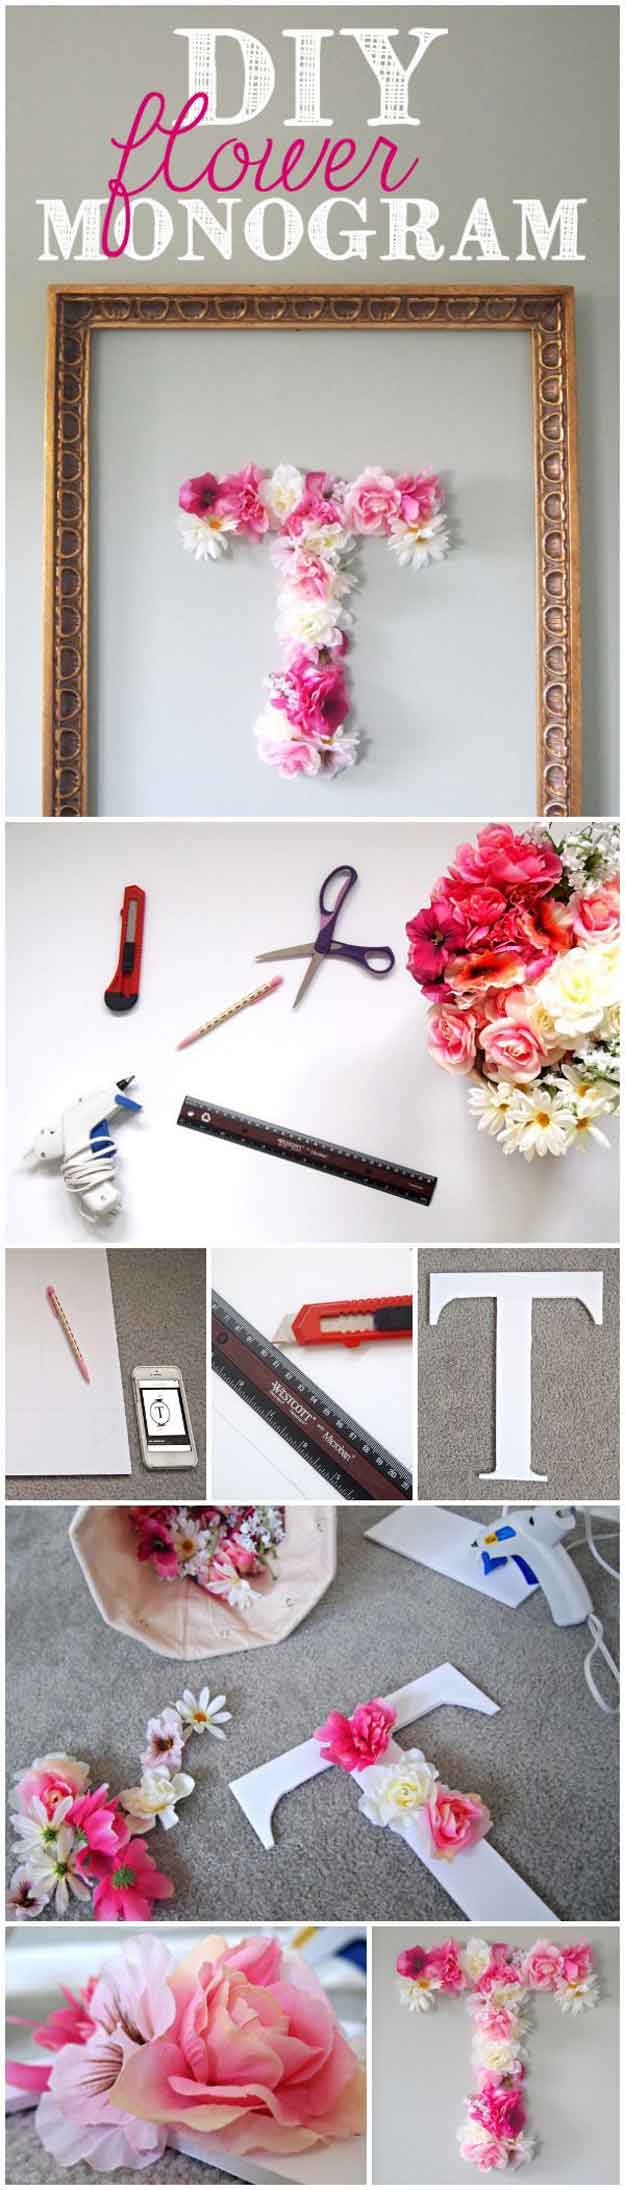 Diy Bedroom Wall Art Decor : Insanely cute teen bedroom ideas for diy decor crafts